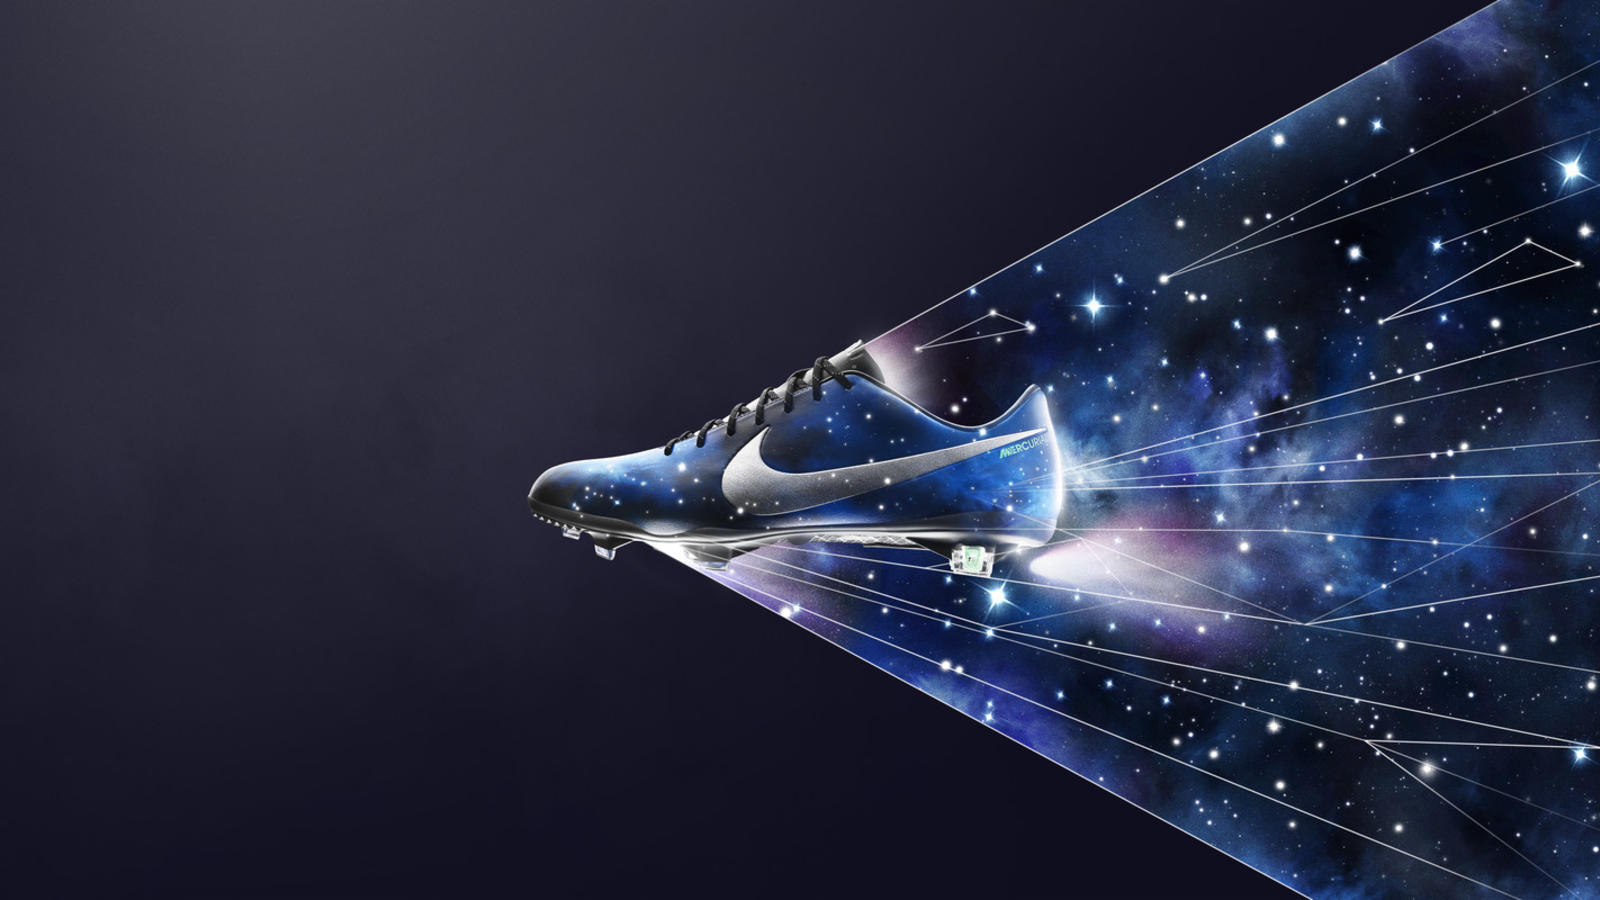 The CR7 Mercurial IX